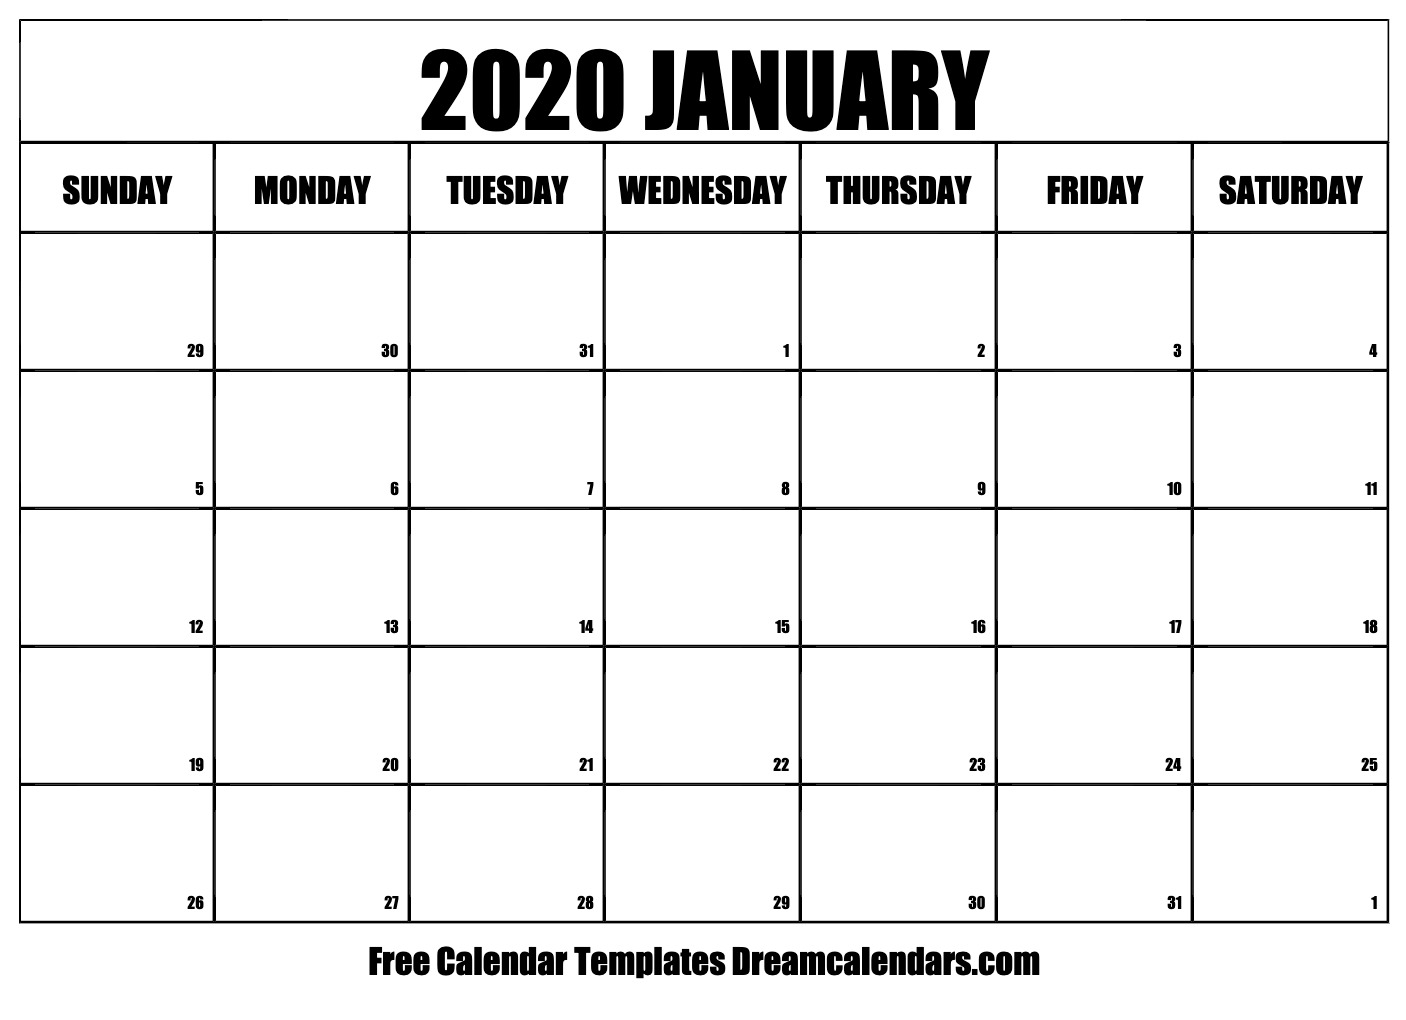 Free Printable 2020 Monthly Calendar.Printable January 2020 Calendar